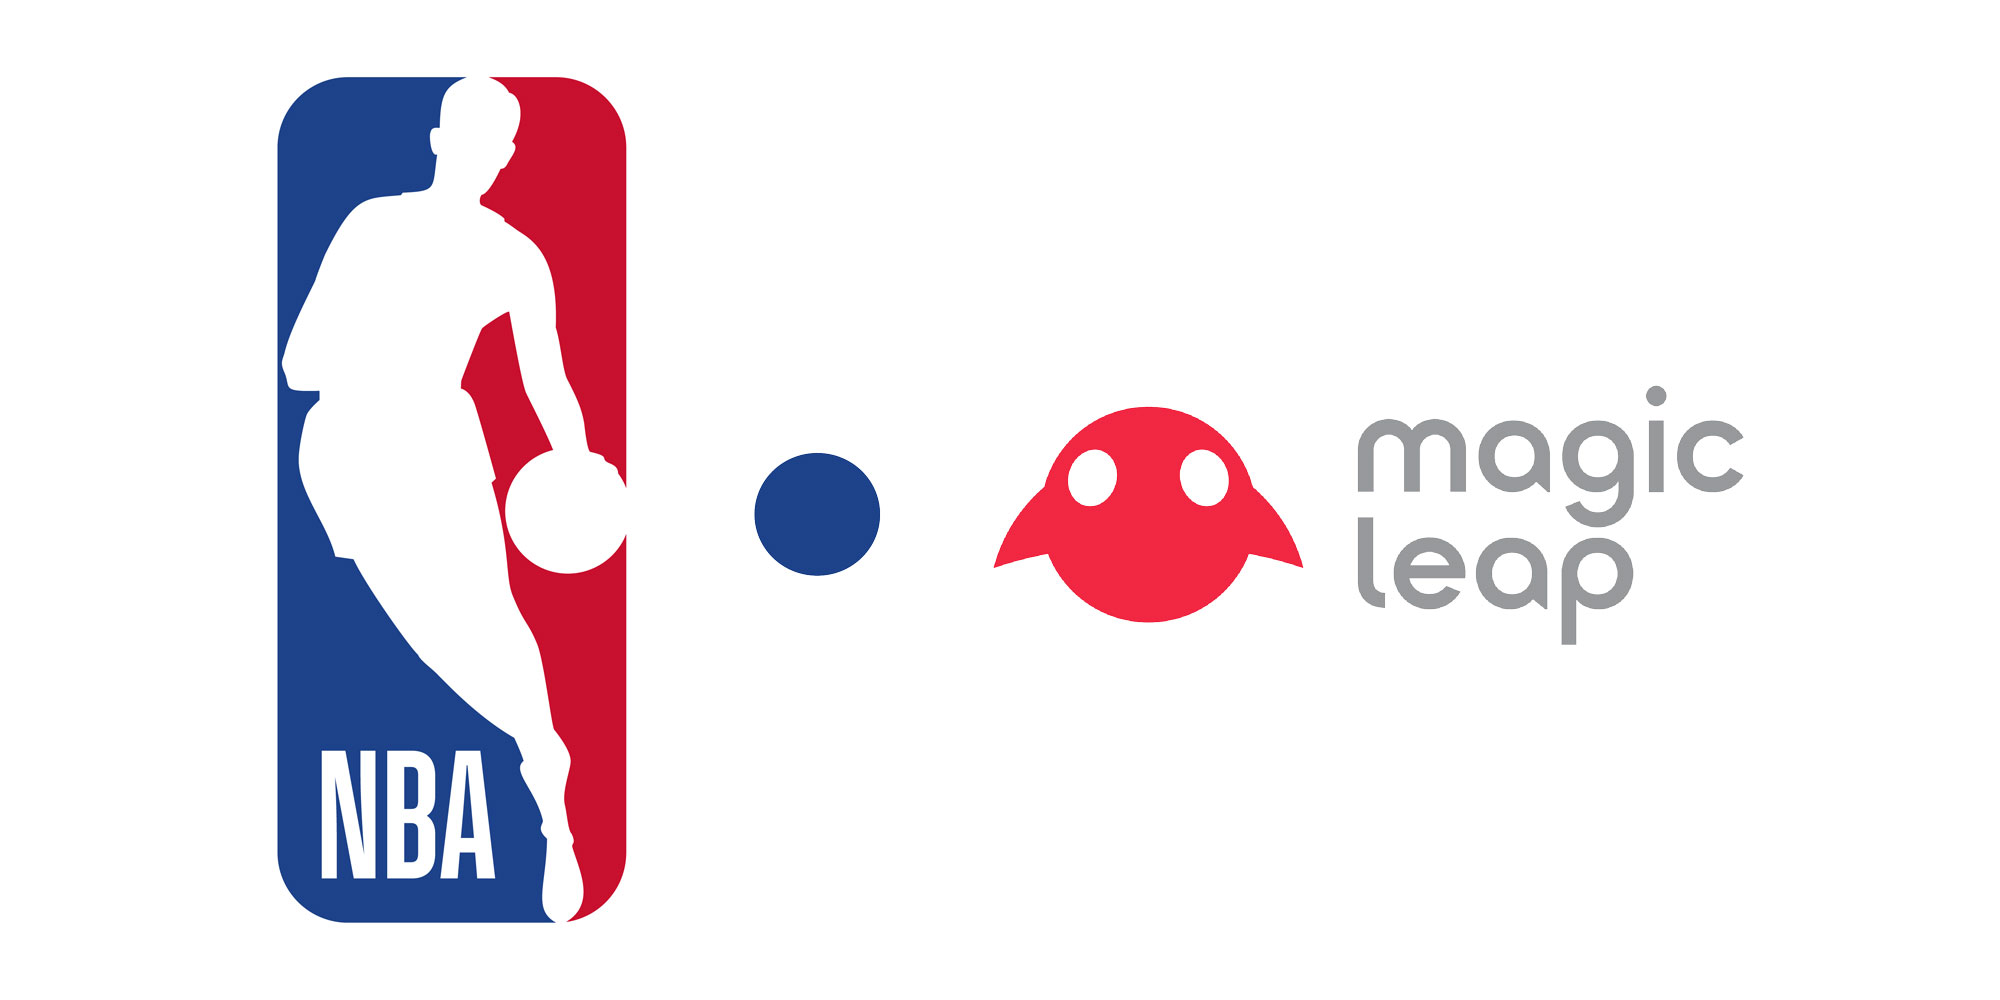 nba-magic-leap-partnership-logo-2-1